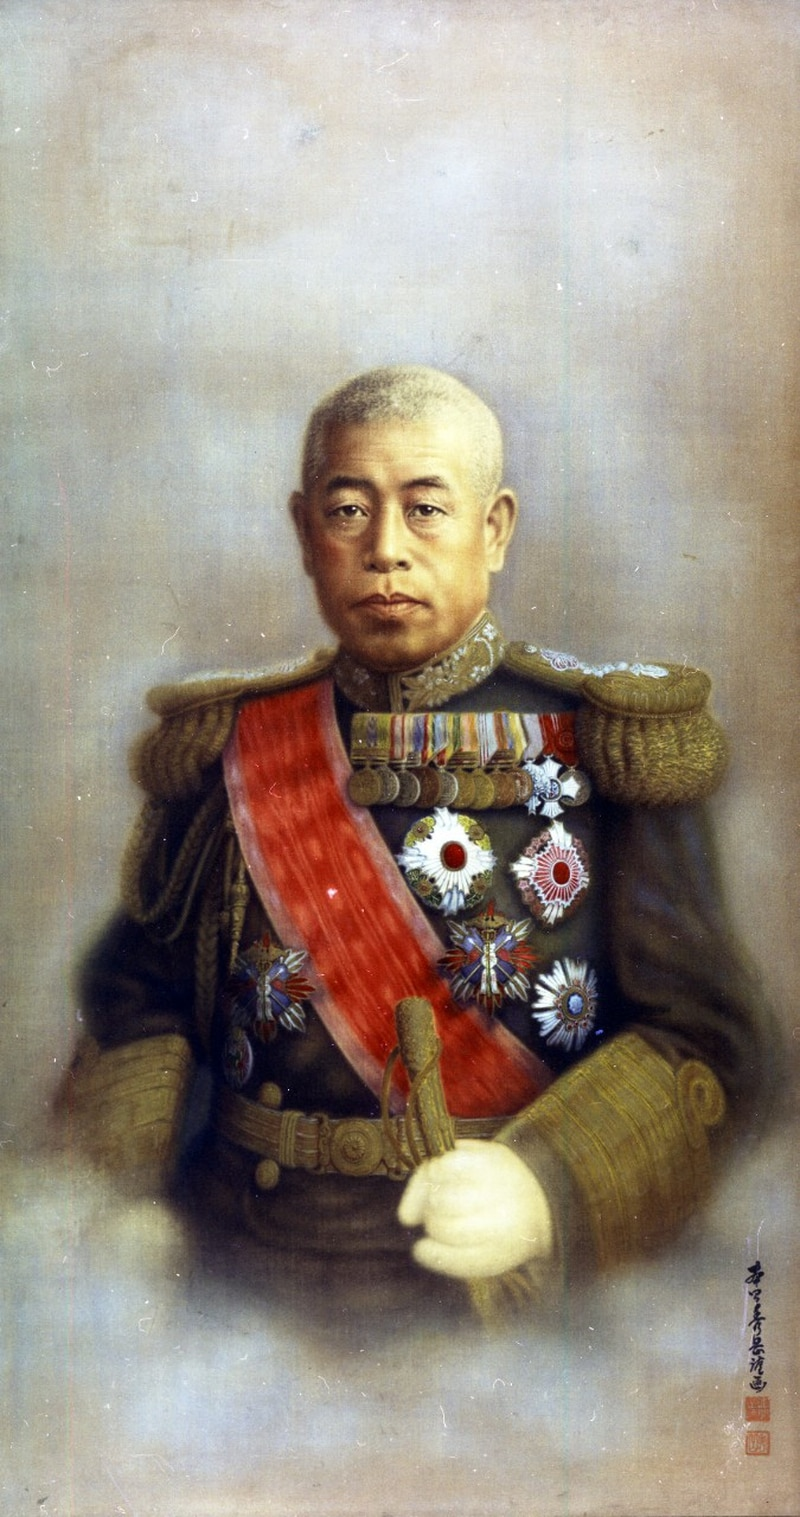 Adm. Isoroku Yamamoto, Imperial Japanese Navy (1884-1943), an official portrait, by Shugaku Homma, 1943. (U.S. Naval History and Heritage Command)